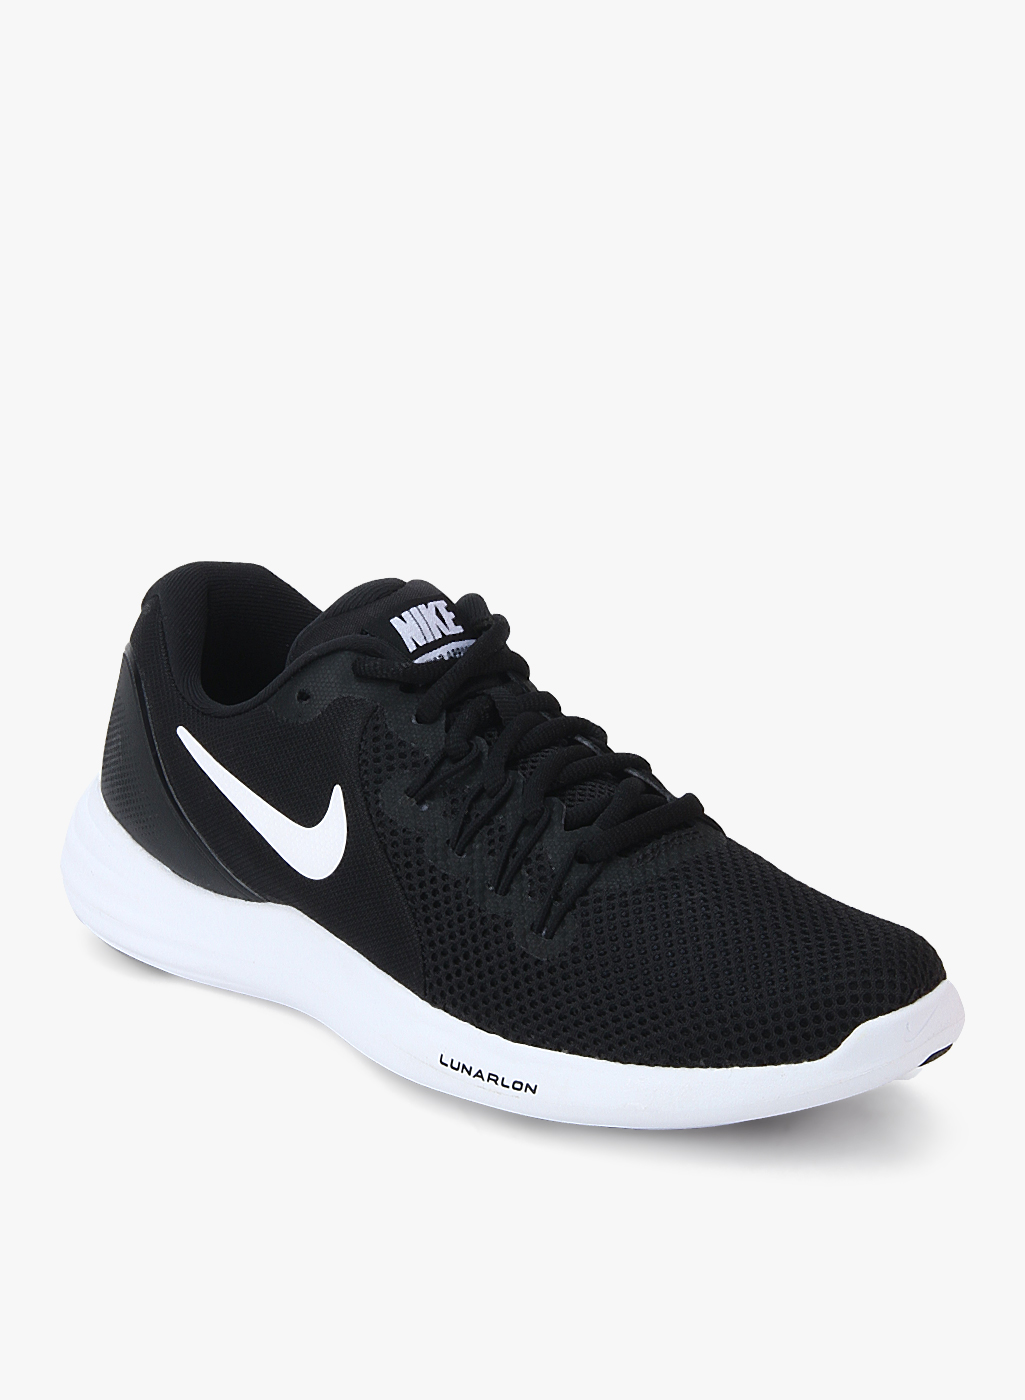 new styles 847c1 22ff5 Nike Lunarlon  Nike Sneakers Online at Best Prices  Backalle